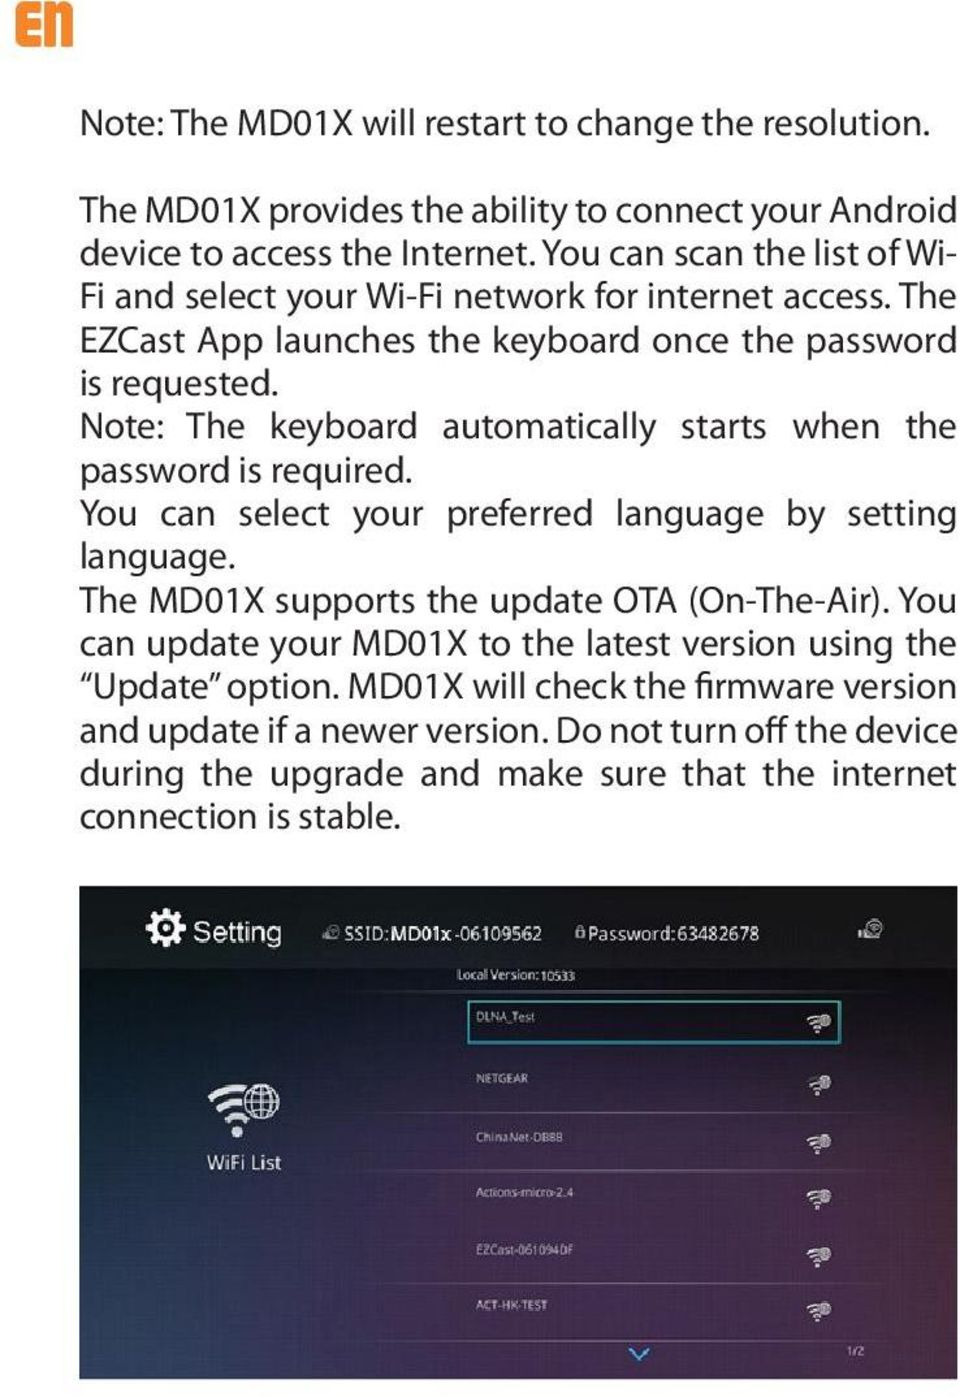 Note: The keyboard automatically starts when the password is required. You can select your preferred language by setting language. The MD01X supports the update OTA (On-The-Air).